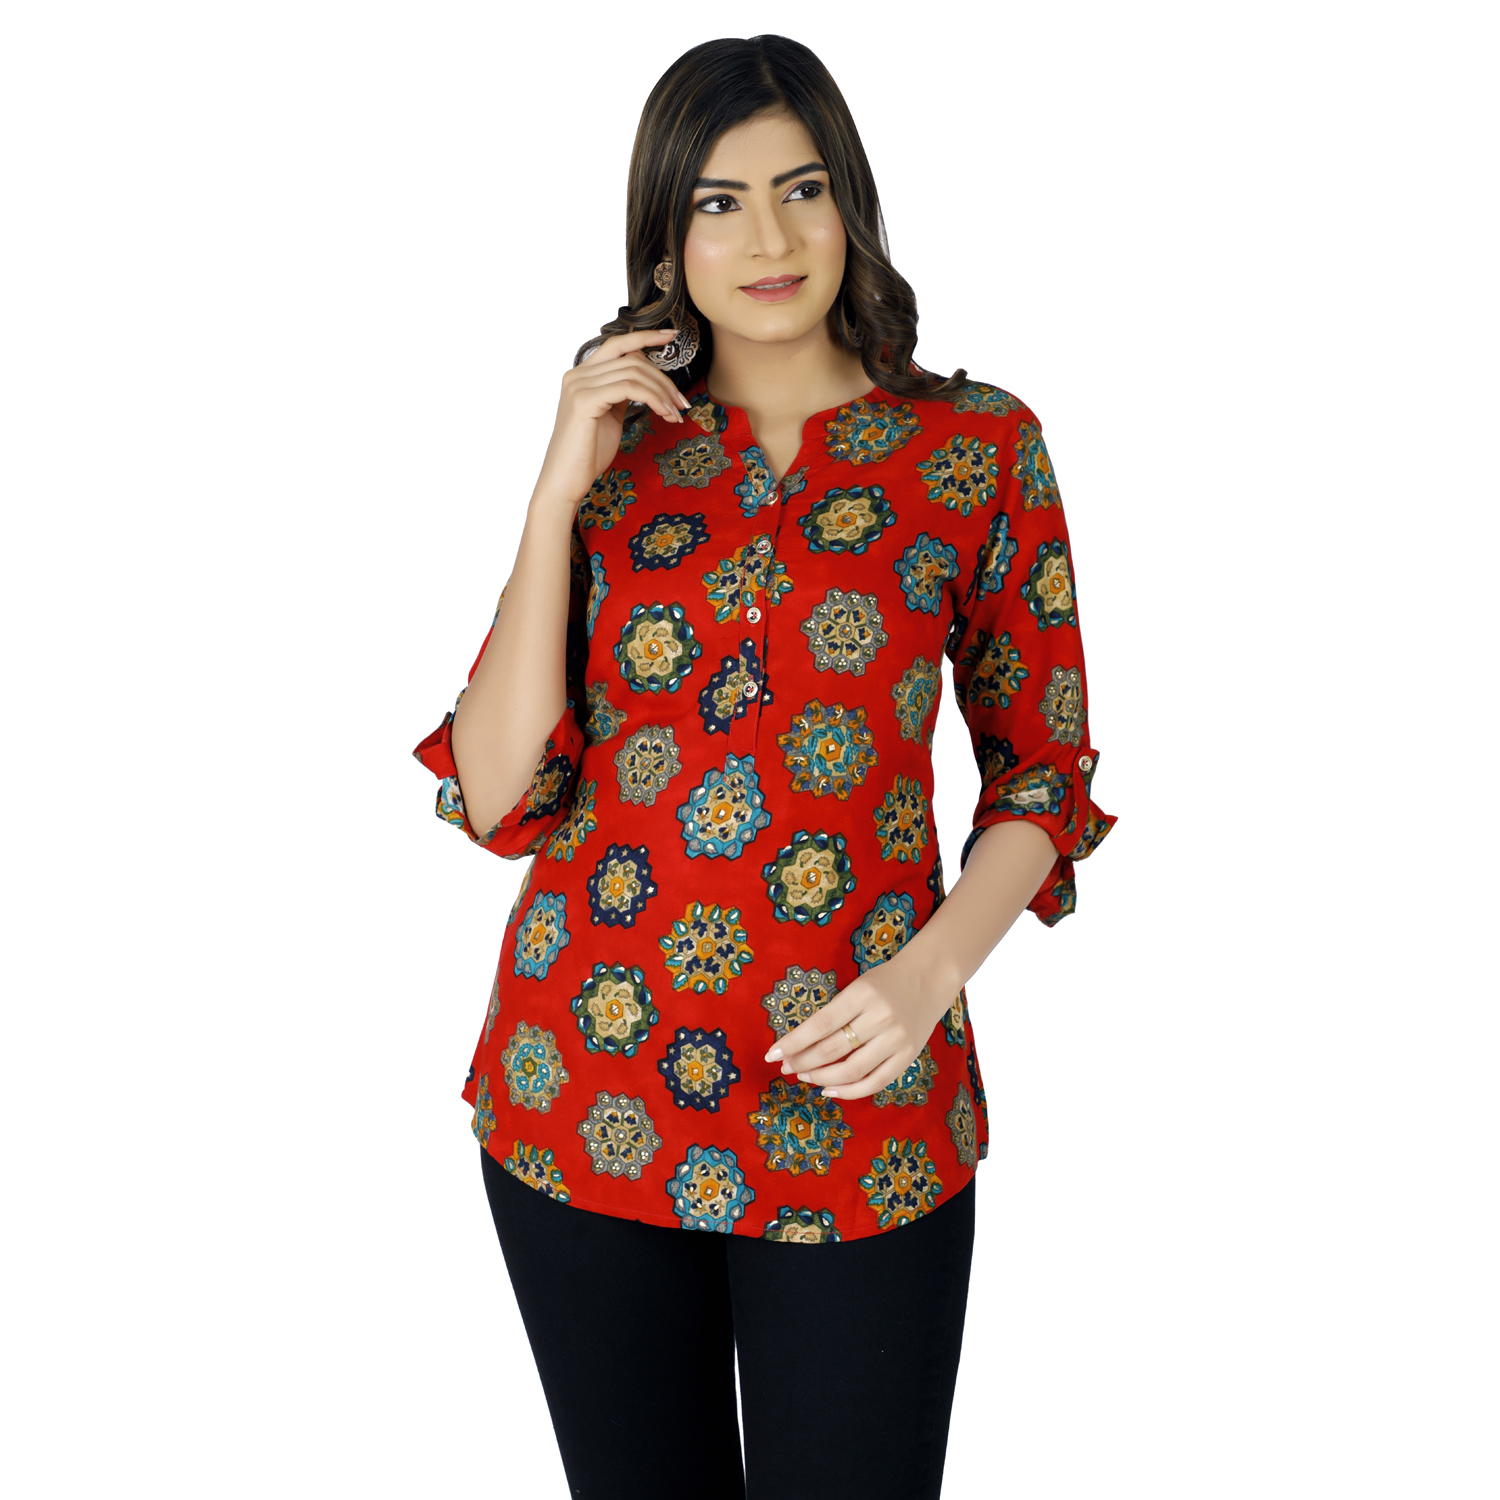 Impex | IMPEX Women's Red Rayon Mandarin Neck Printed Top